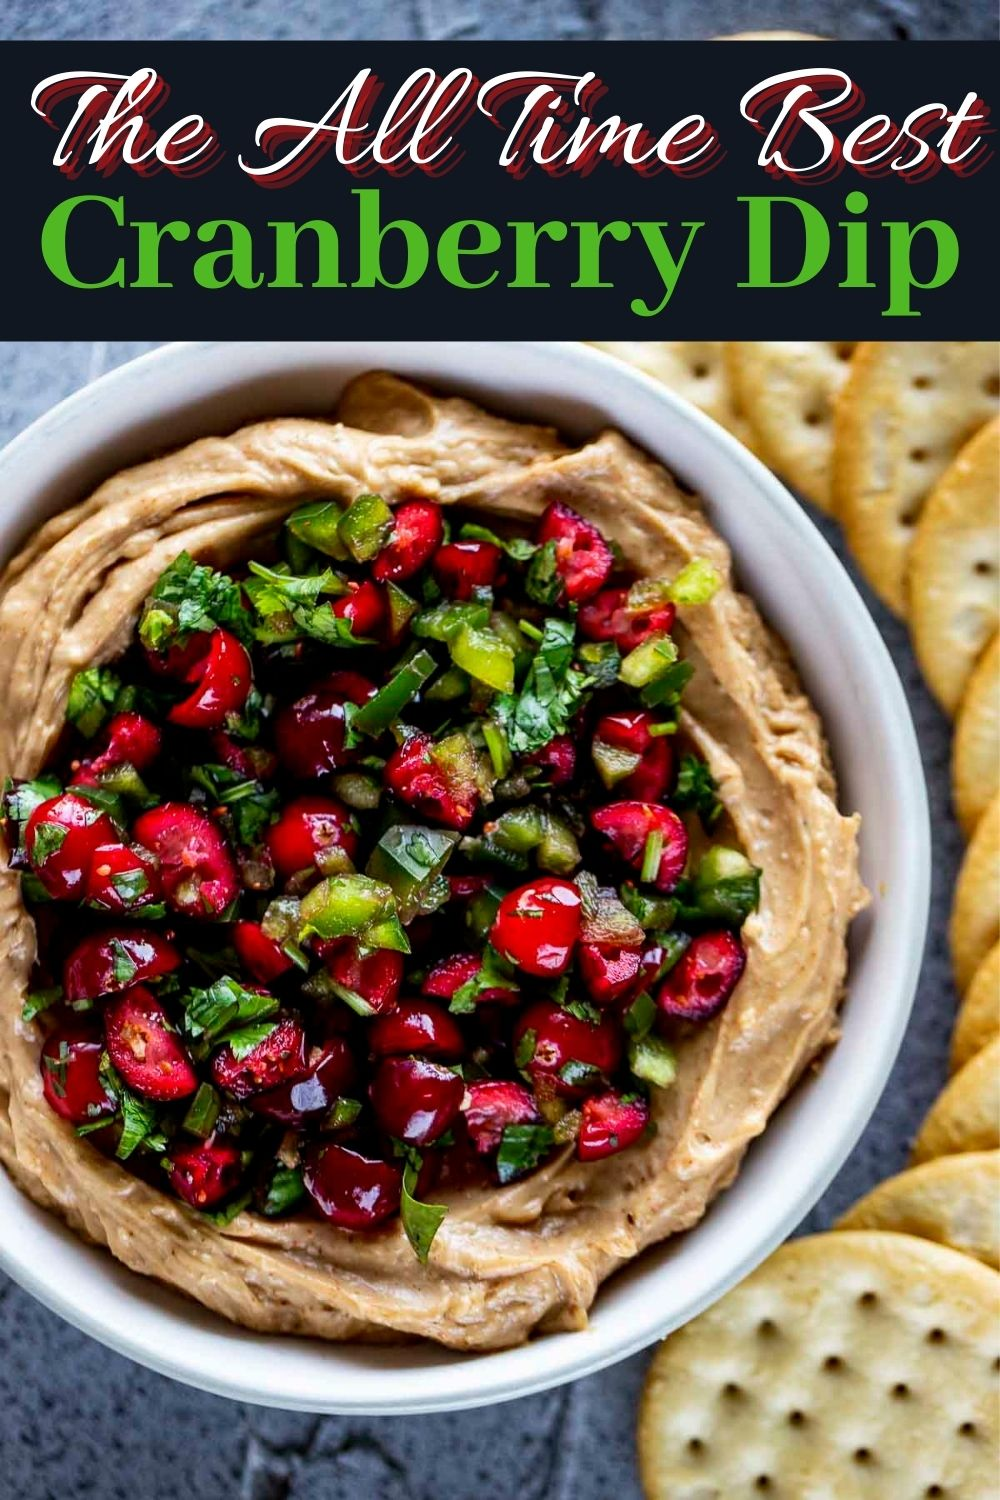 Cranberry Jalapeno Dip - The BEST Holiday Appetizer!